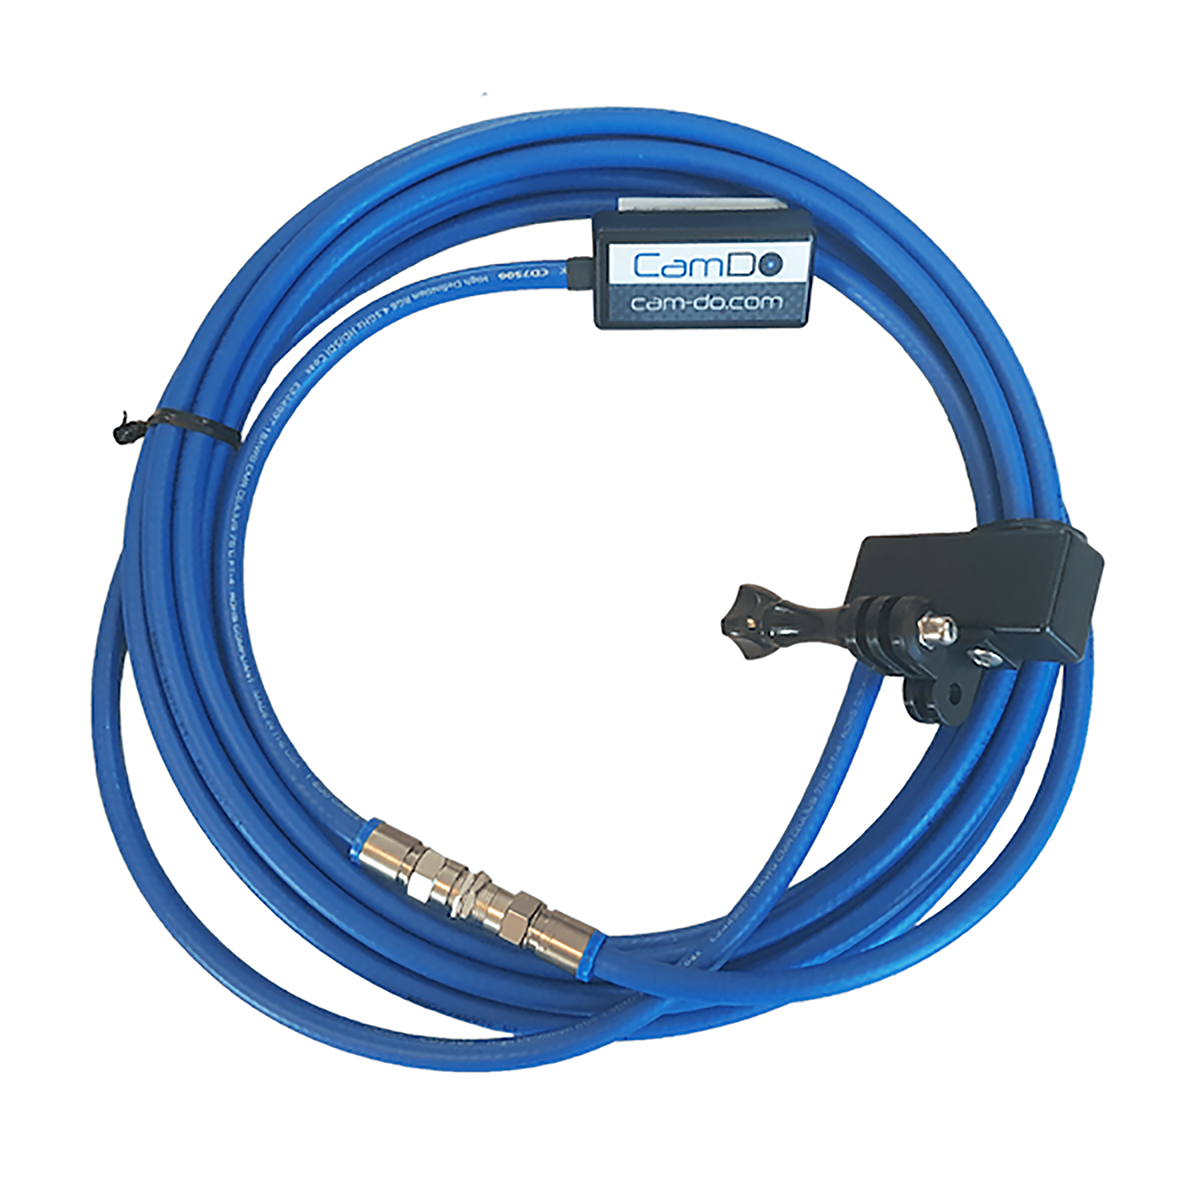 CamDo underwater WiFi Cable